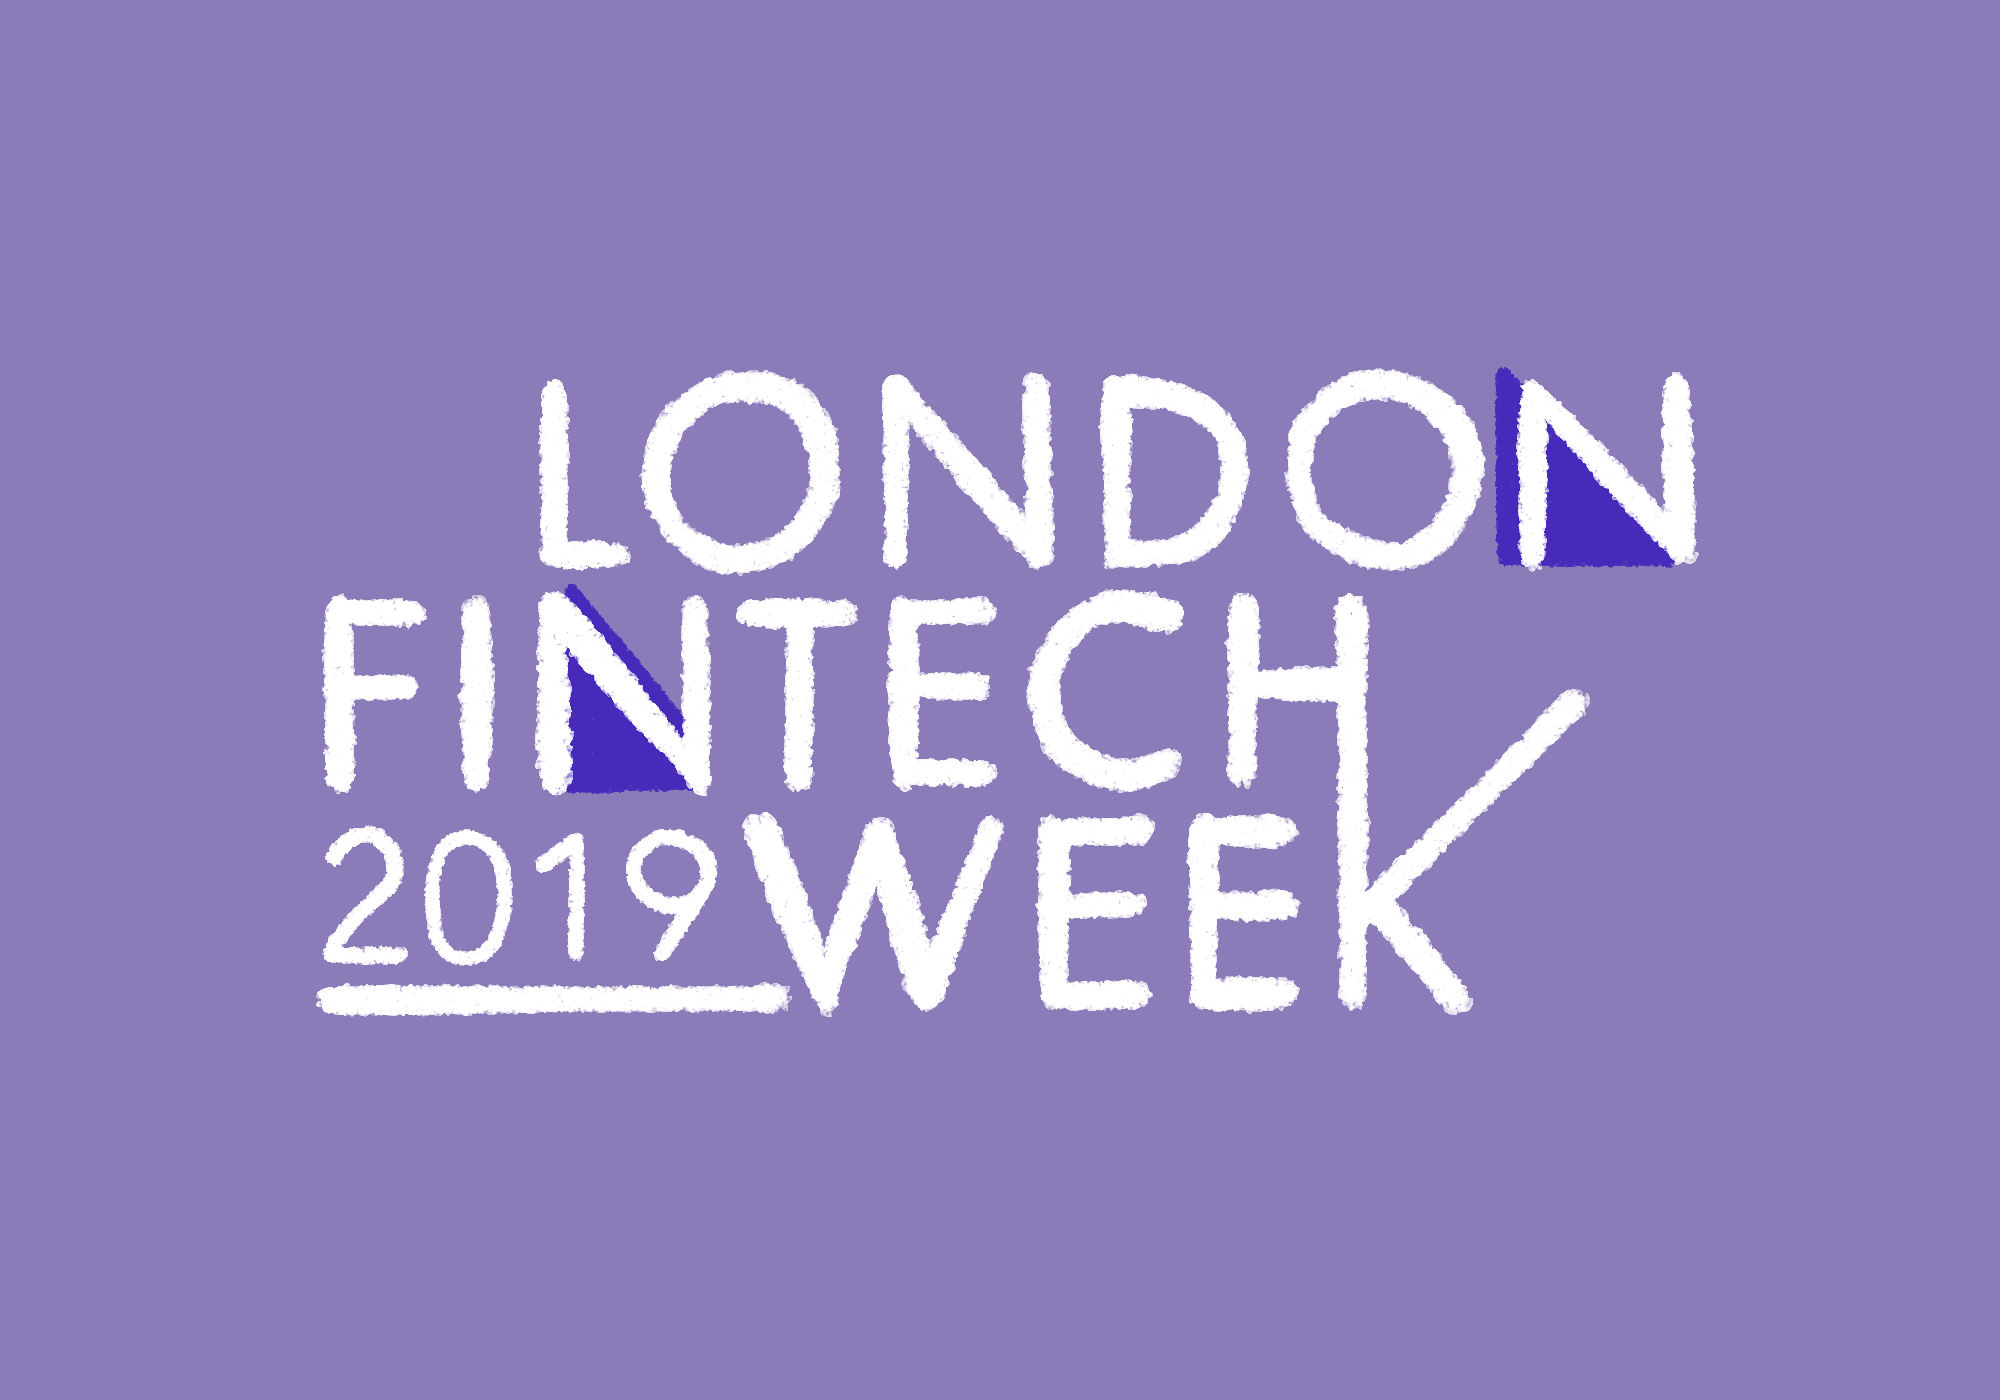 Why is Fintech Week so important?